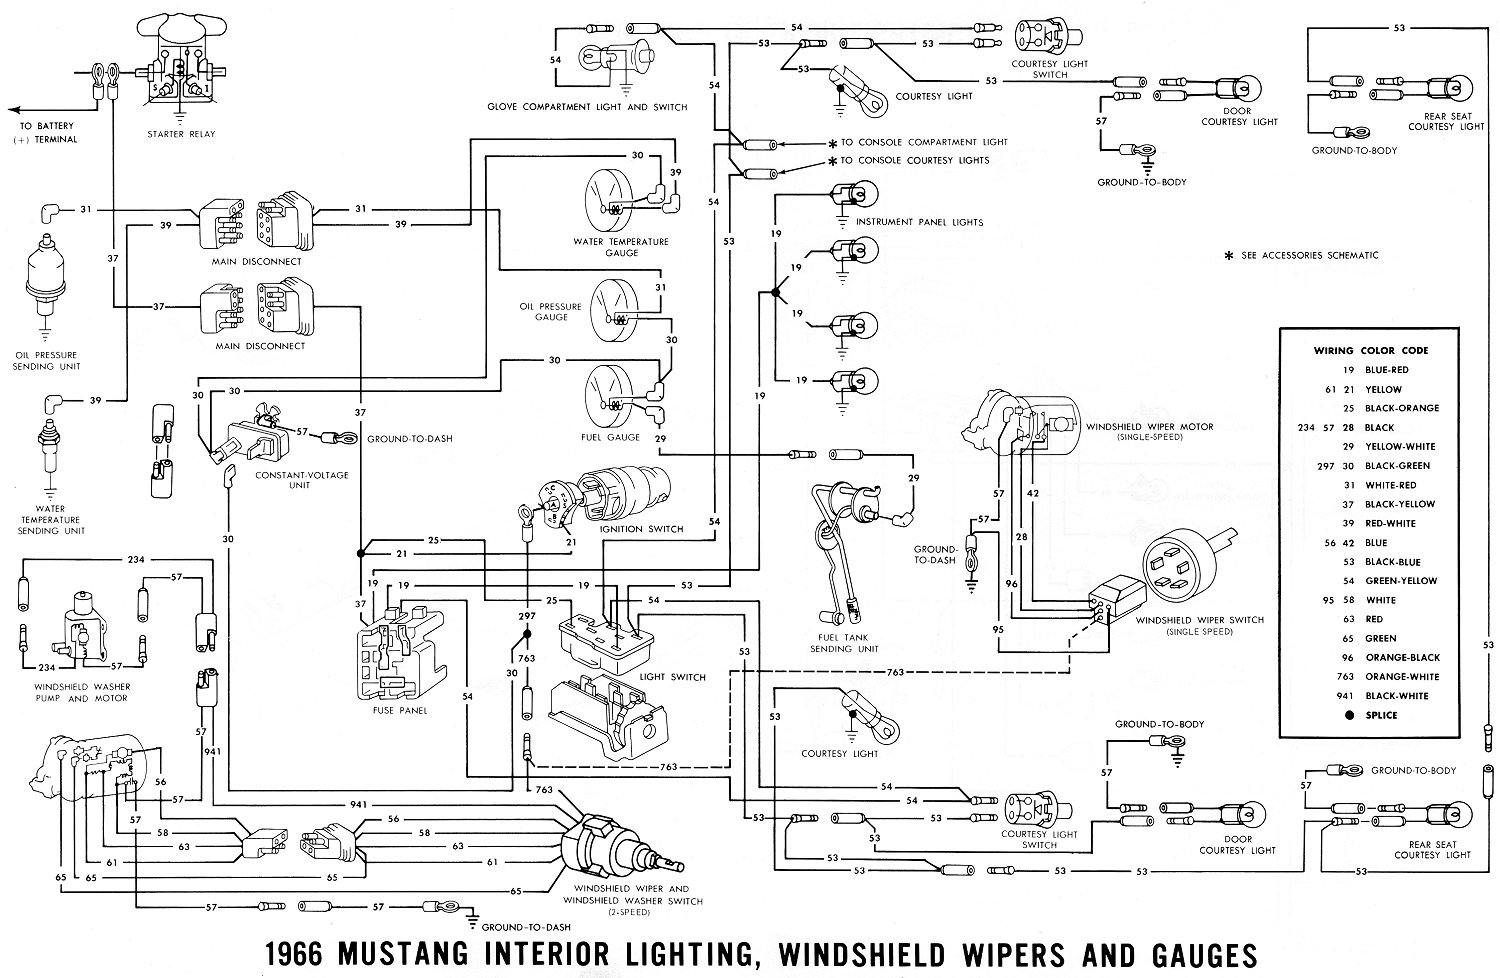 66inter1 1966 mustang wiring diagram 1967 mustang wiring schematic \u2022 wiring 1967 mustang ignition wiring diagram at soozxer.org